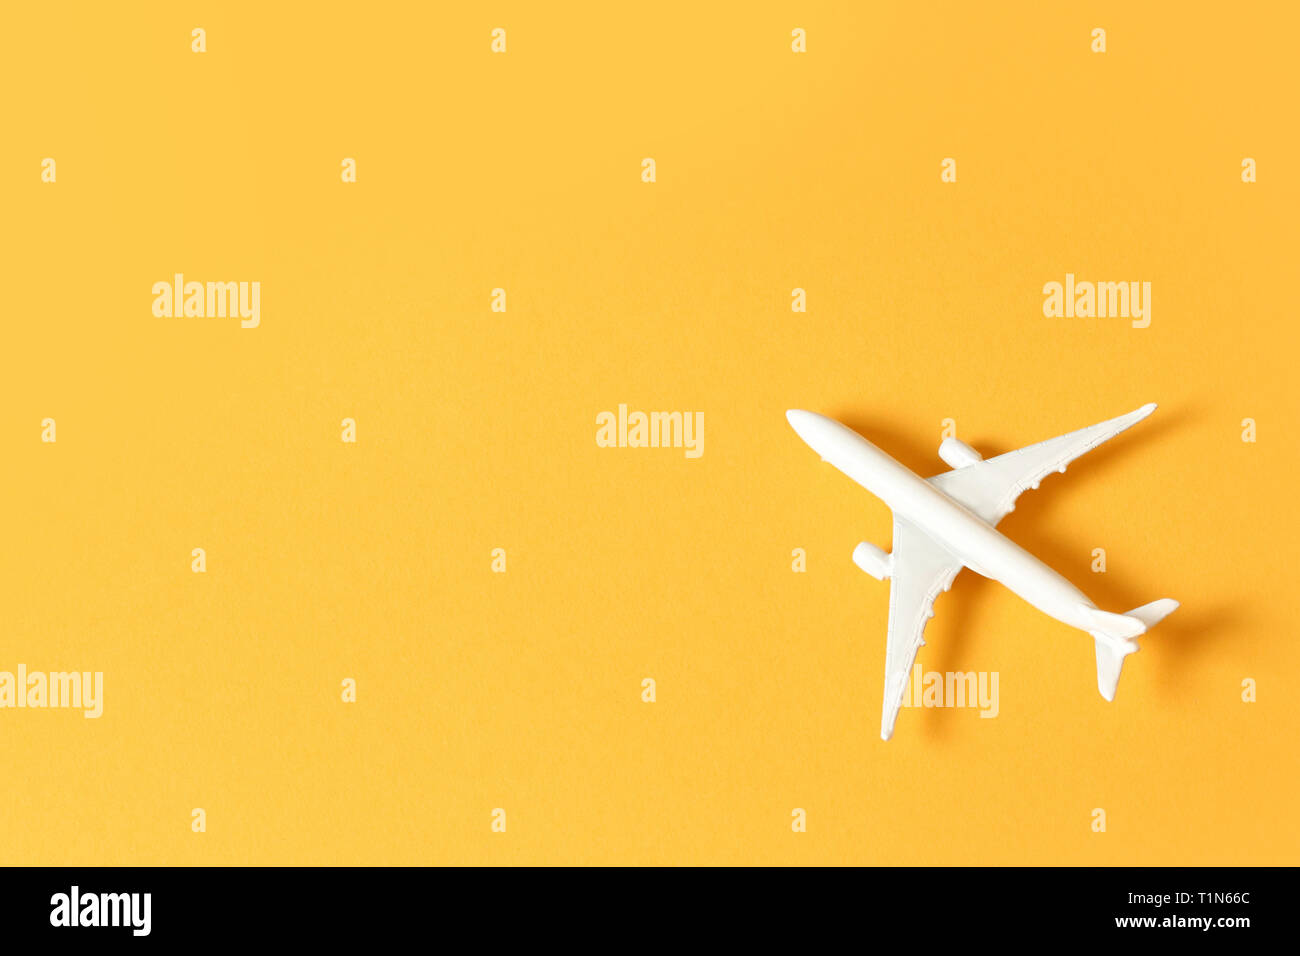 White toy airplane on a yellow background with copy space Stock Photo